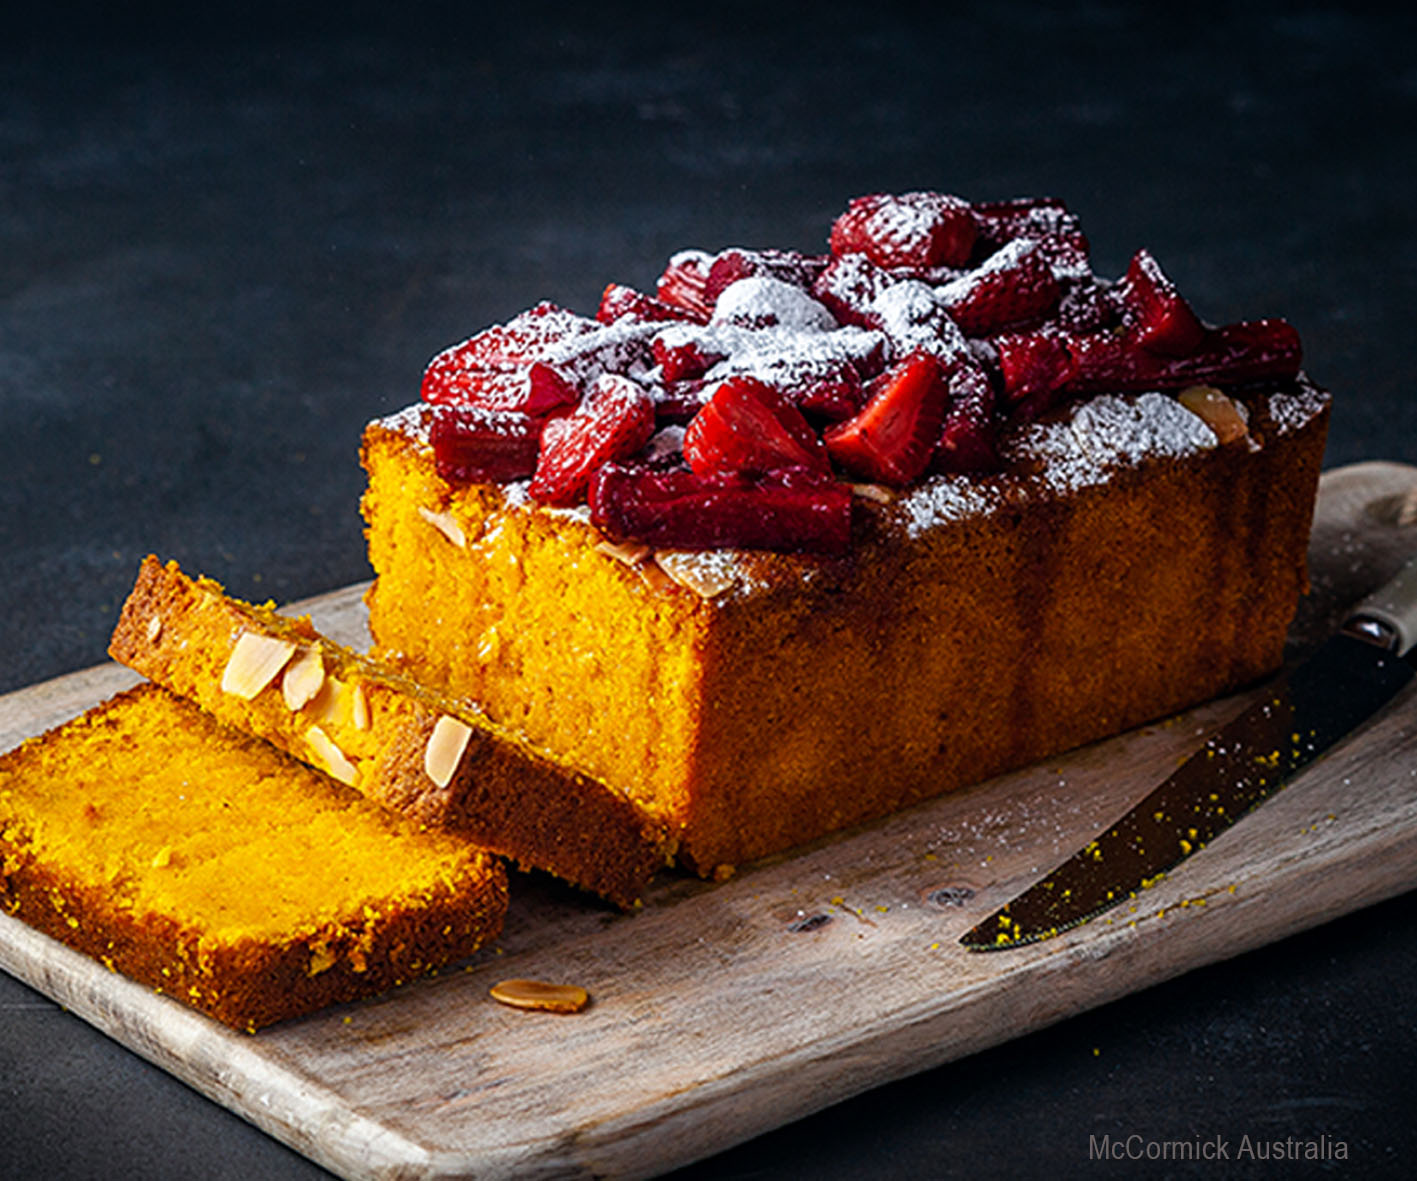 COOKINGPOSTJPEG - 1.-TURMERIC-POLENTA-CAKE-WITH-CINNAMON-FRUIT-AND-YOGHURT-CREAM